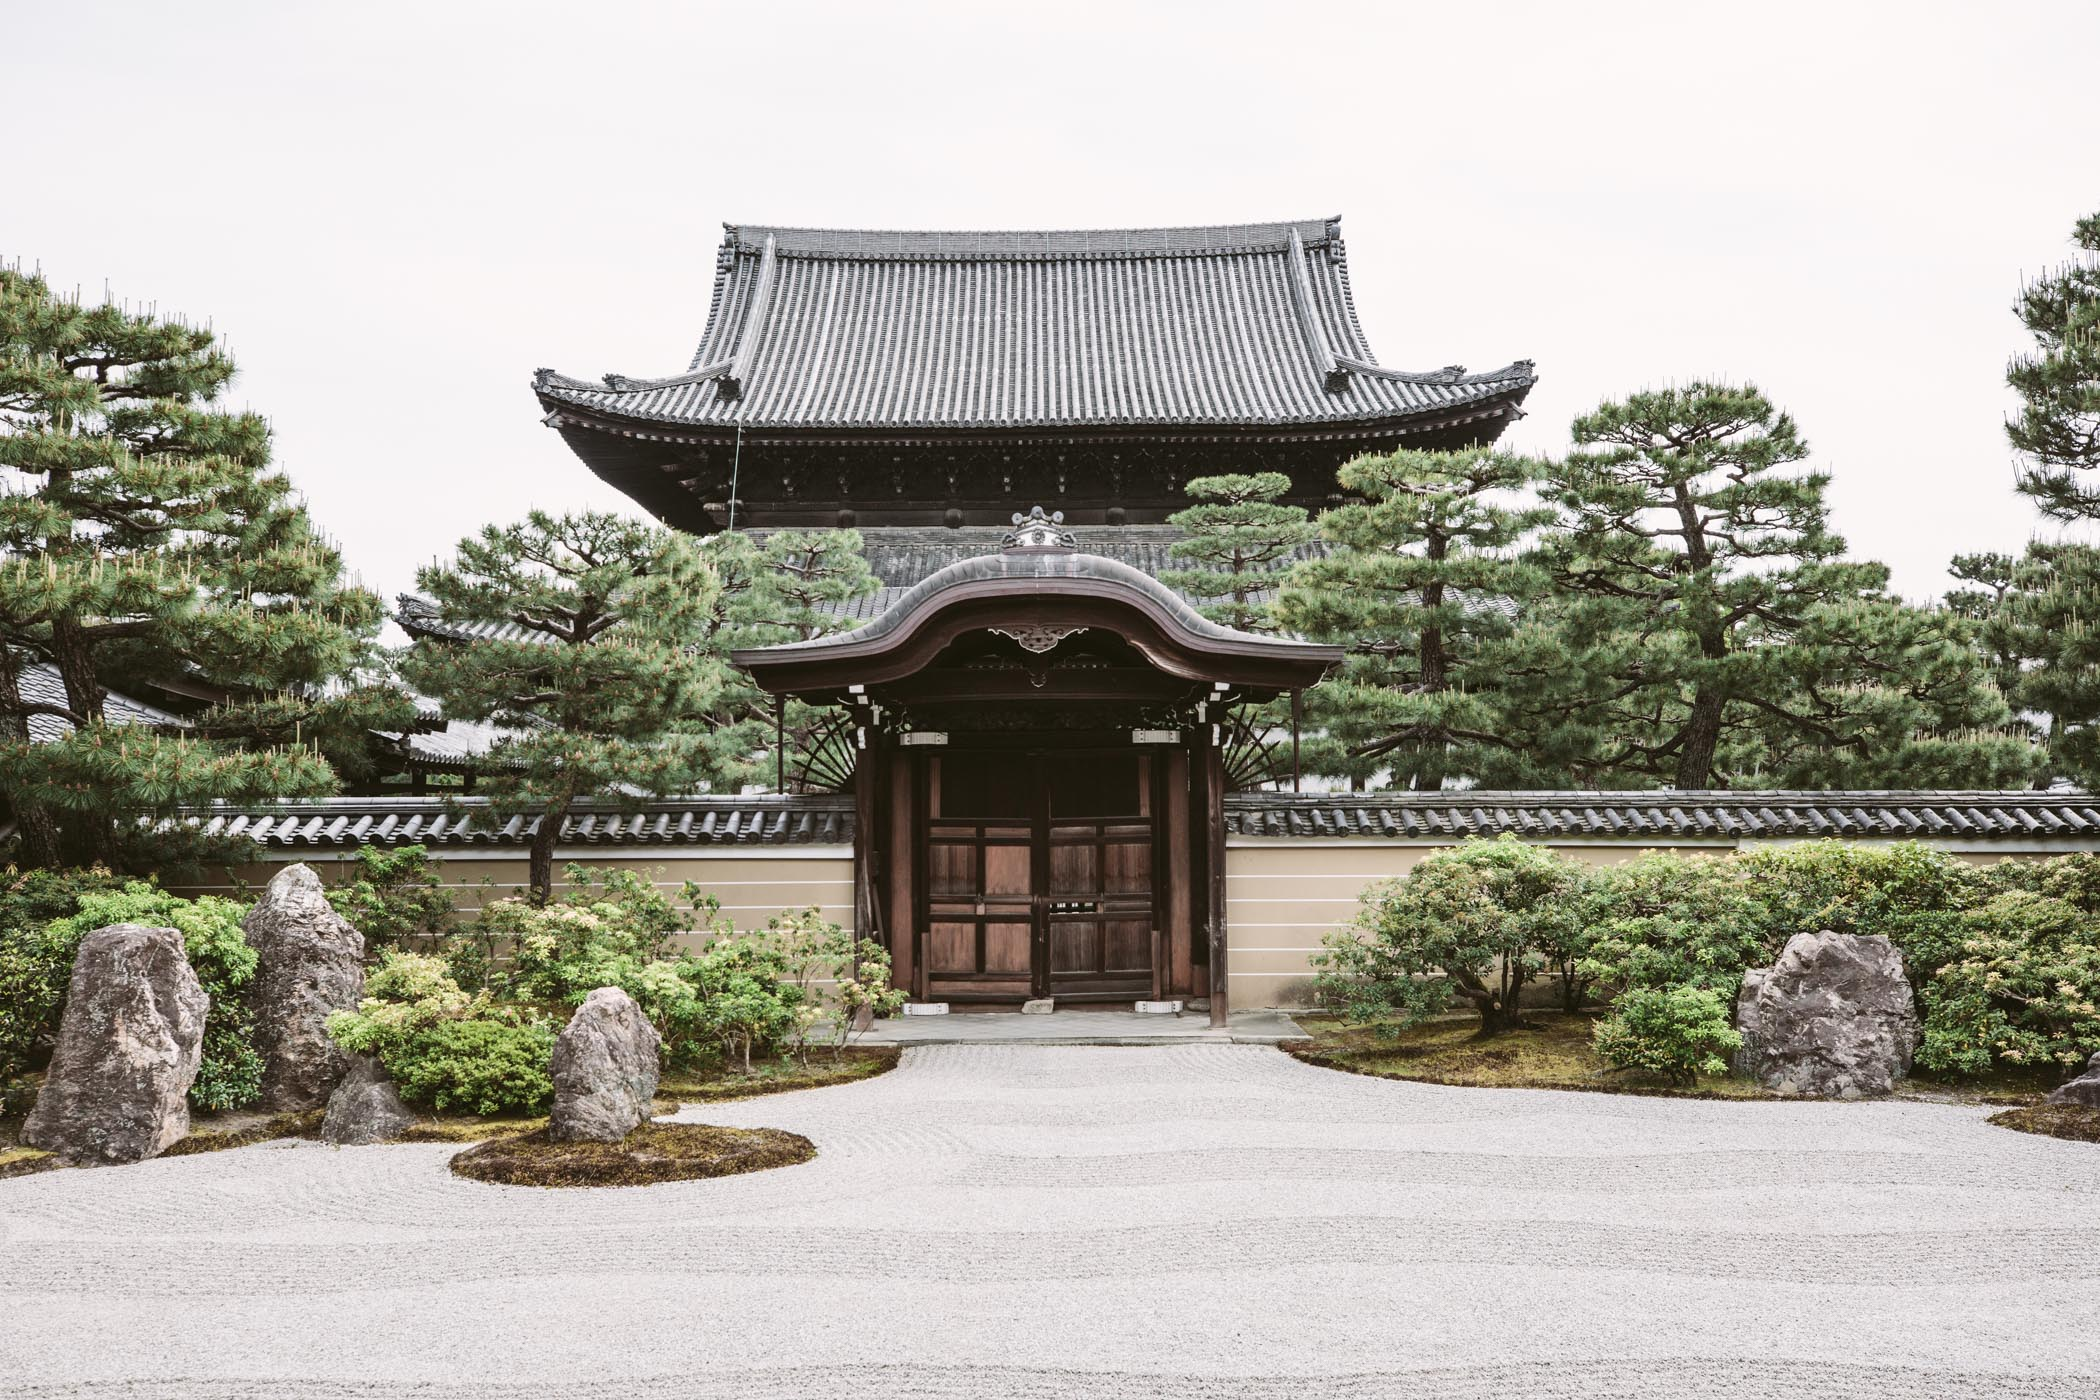 Kennin-ji Temple in Kyoto